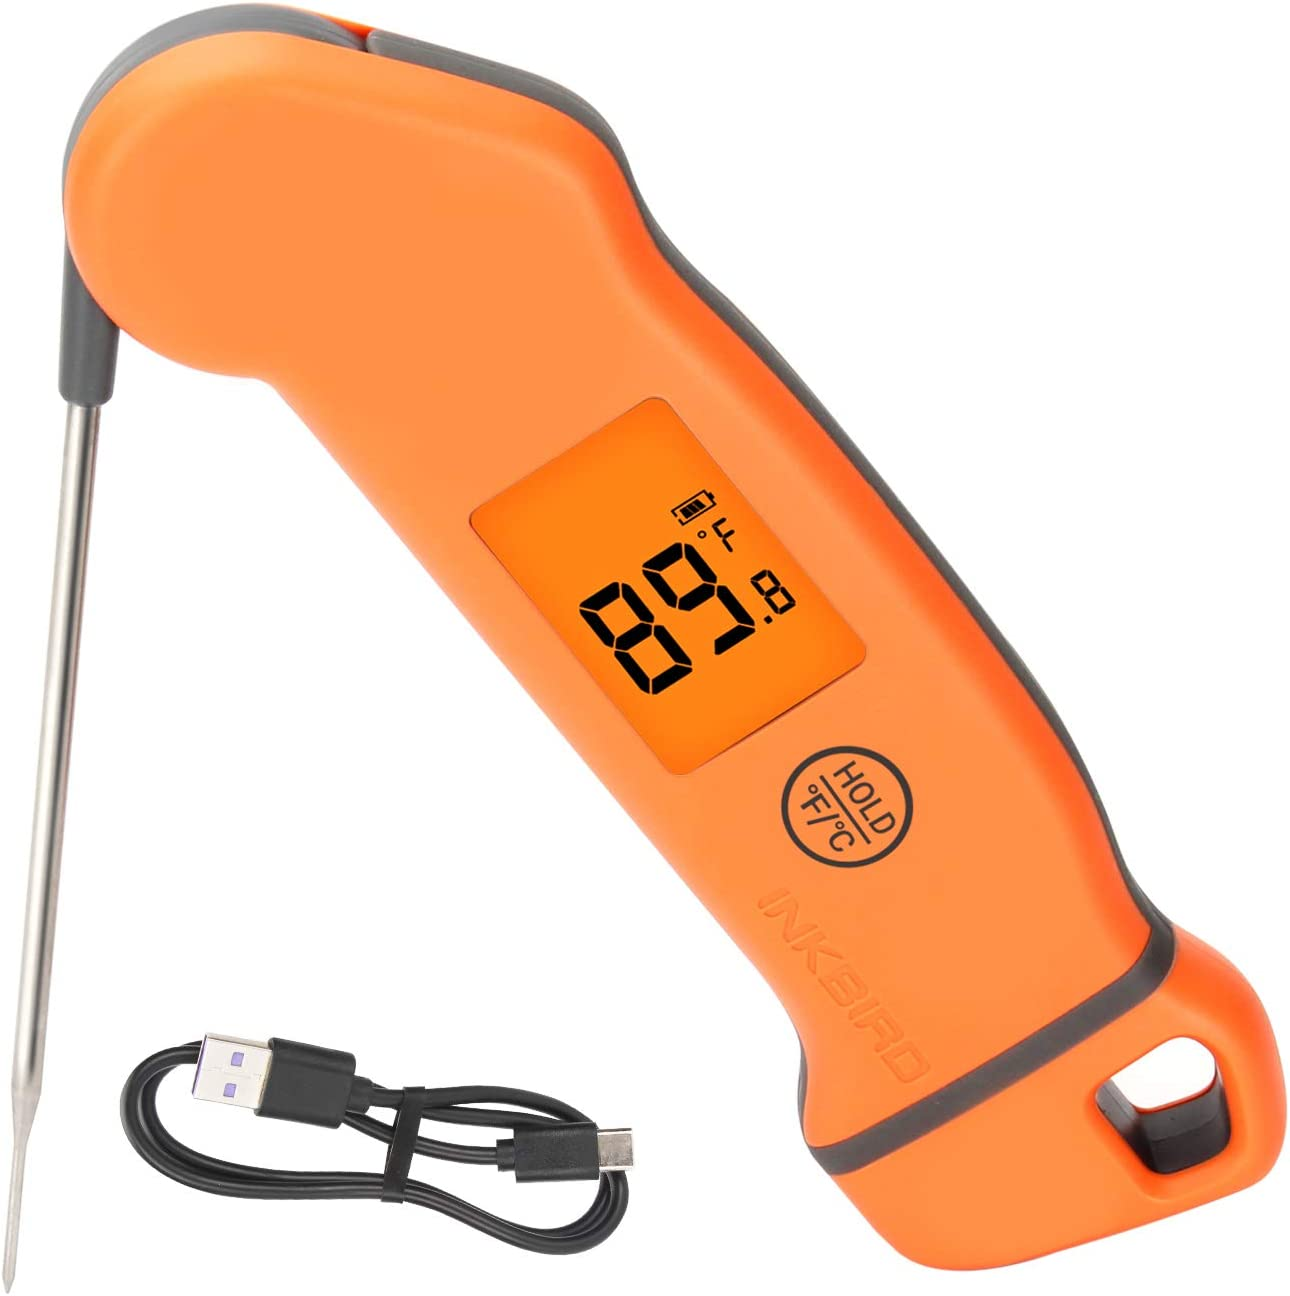 Inkbird Digital Instant Read Meat Thermometer, Candy Thermometer with Rotatable Screen Auto Backlight, Waterproof Kitchen Food Thermometer for Grill, Smoker, Kitchen, BBQ, Oven, Candy, Baking